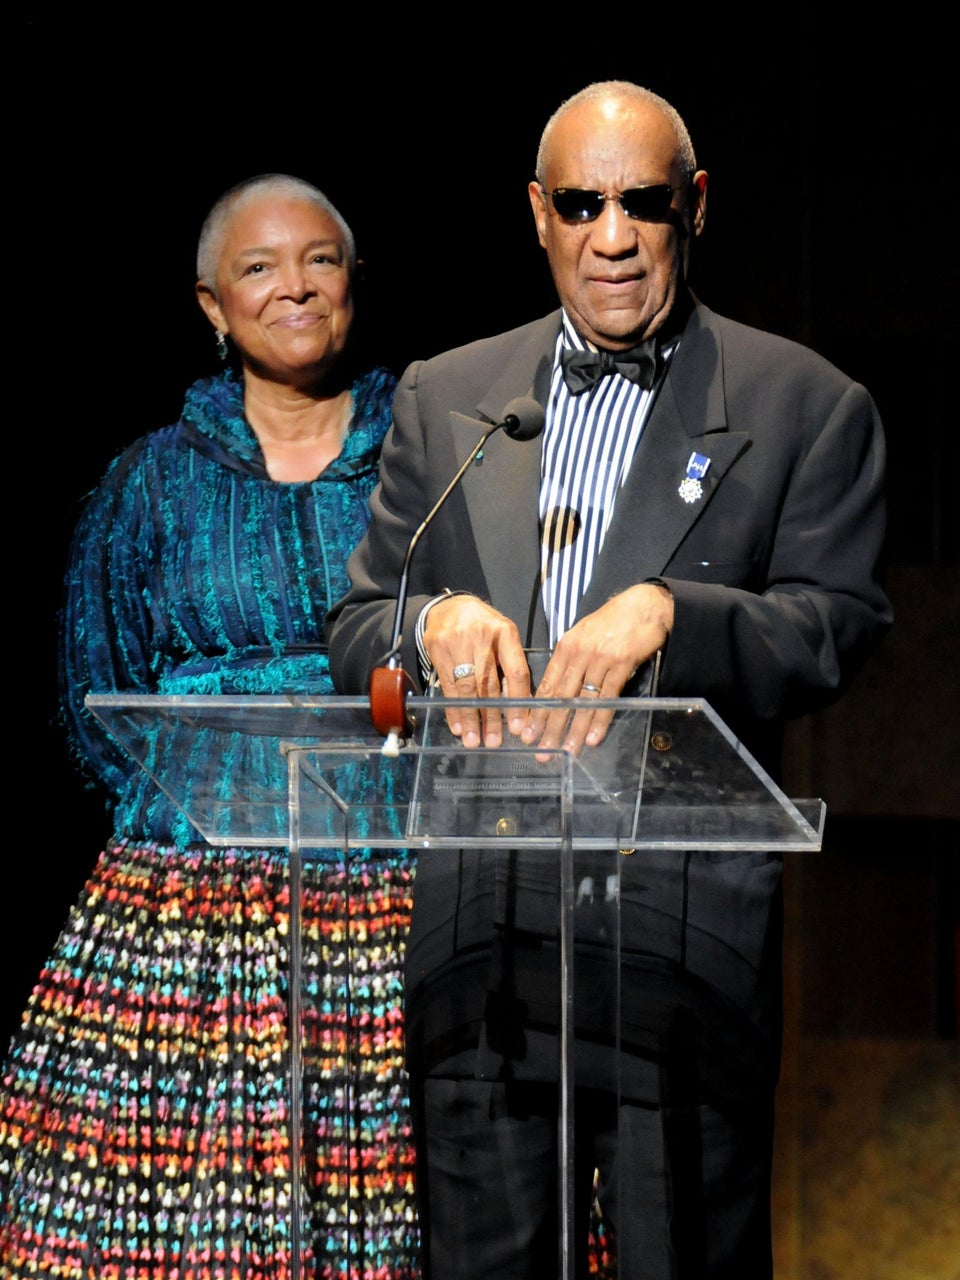 Camille Cosby Breaks Silence on Her Husband's Sexual Assault Allegations